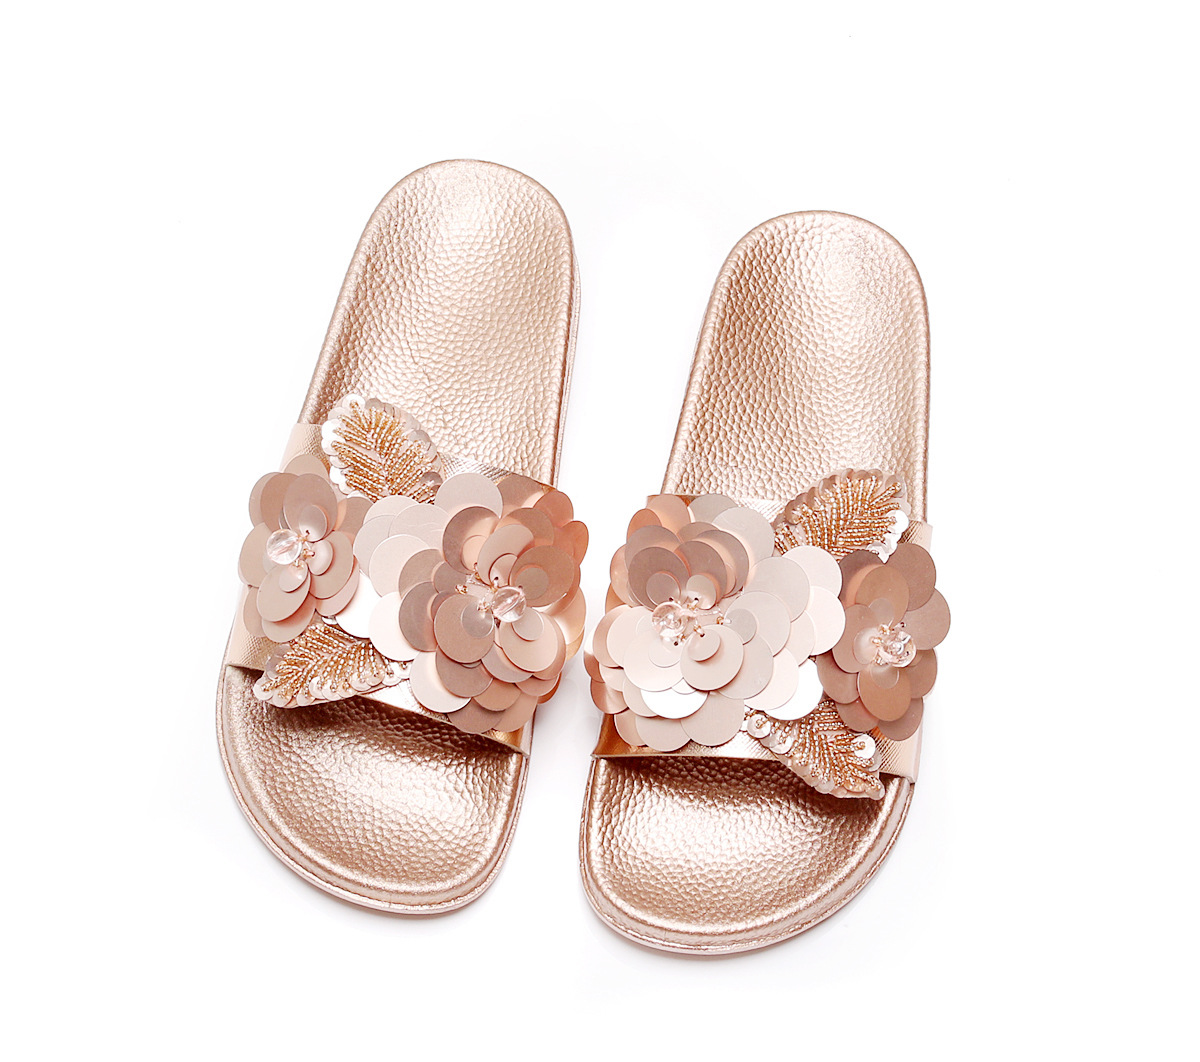 Women Slippers Flip Flops Peep Toe Sandals Glitter Slippers Sandals Platform Comfortable Summer Slippers Woman 201818 woman slippers caf